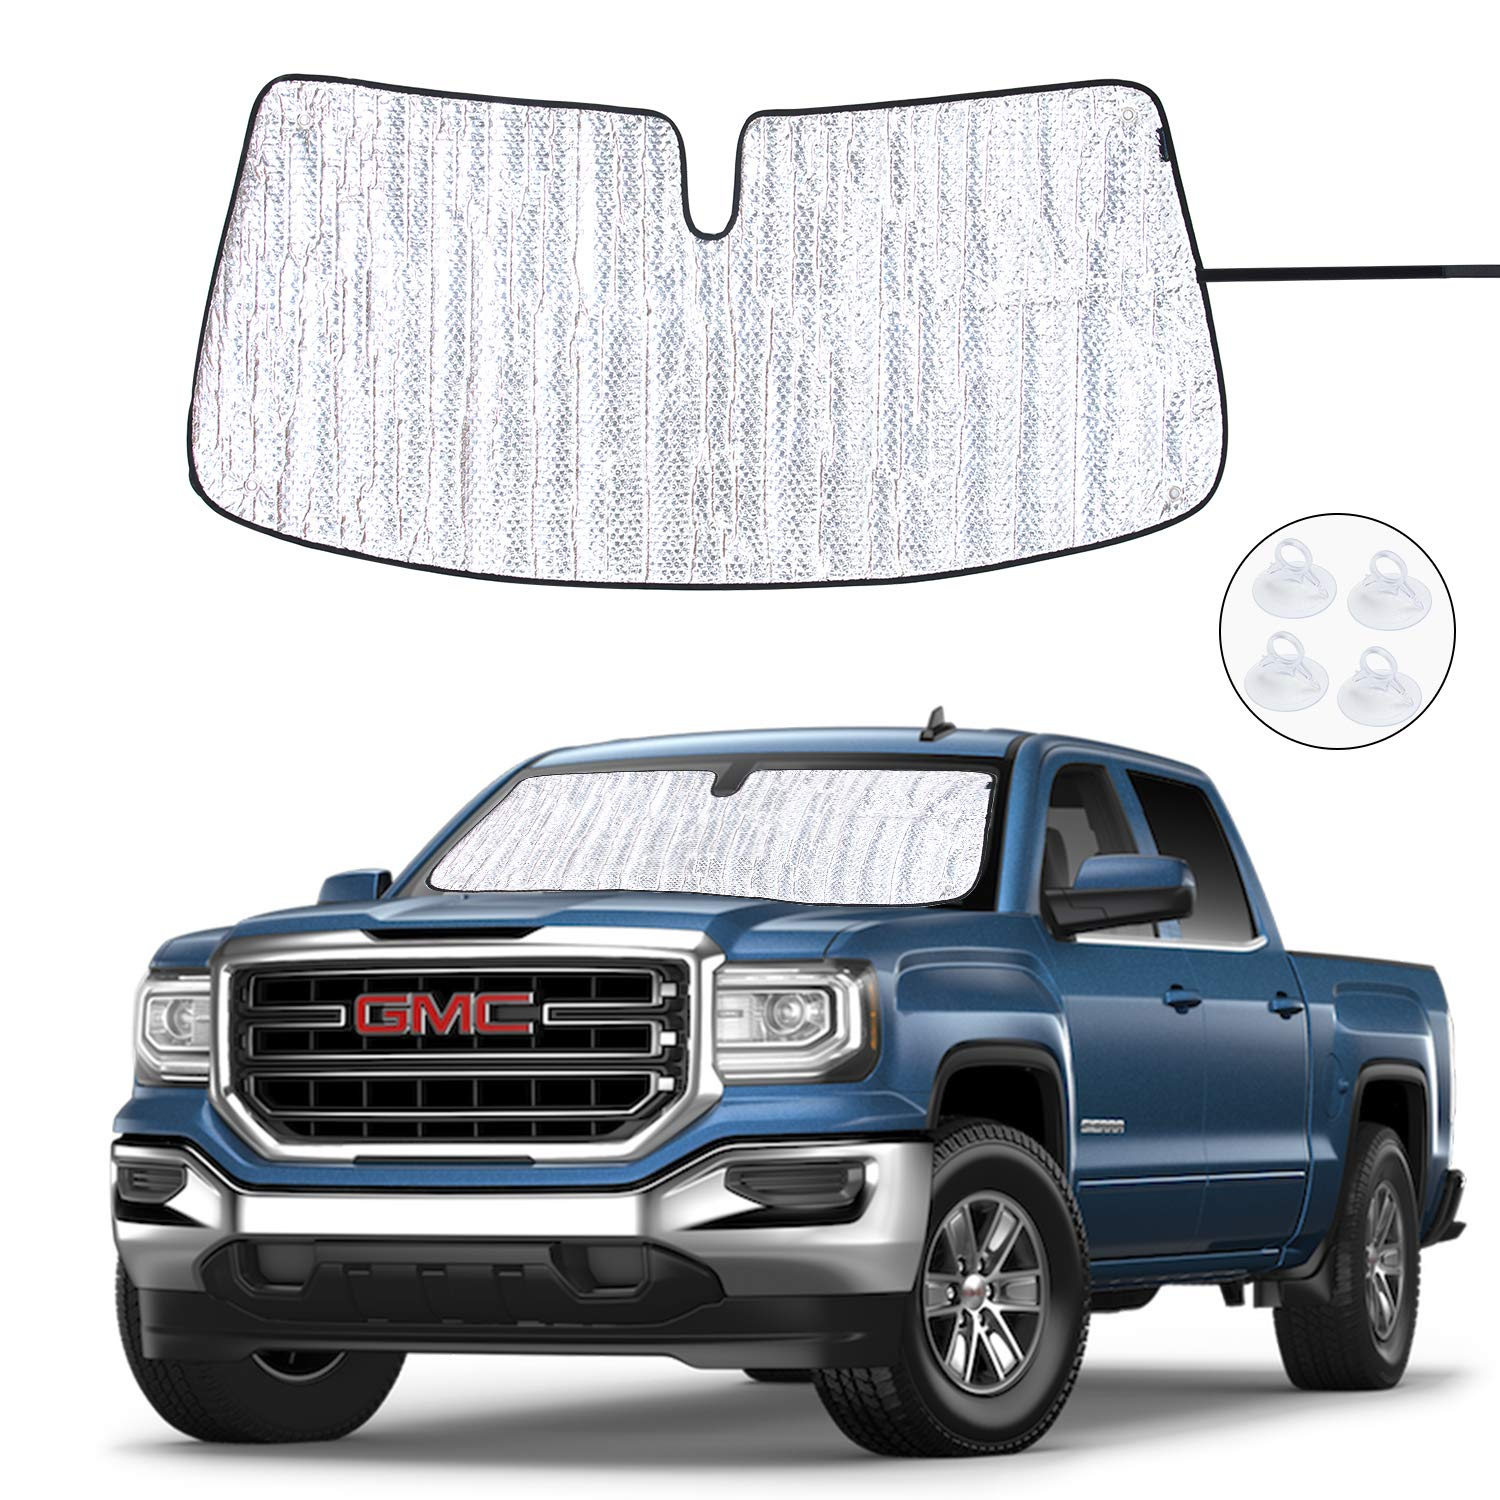 ROCCS Bed Rail Stake Pocket Covers Hole Plugs for 2014-2018 Chevy Silverado 1500 2500 2500HD 3500 GMC Sierra 1500